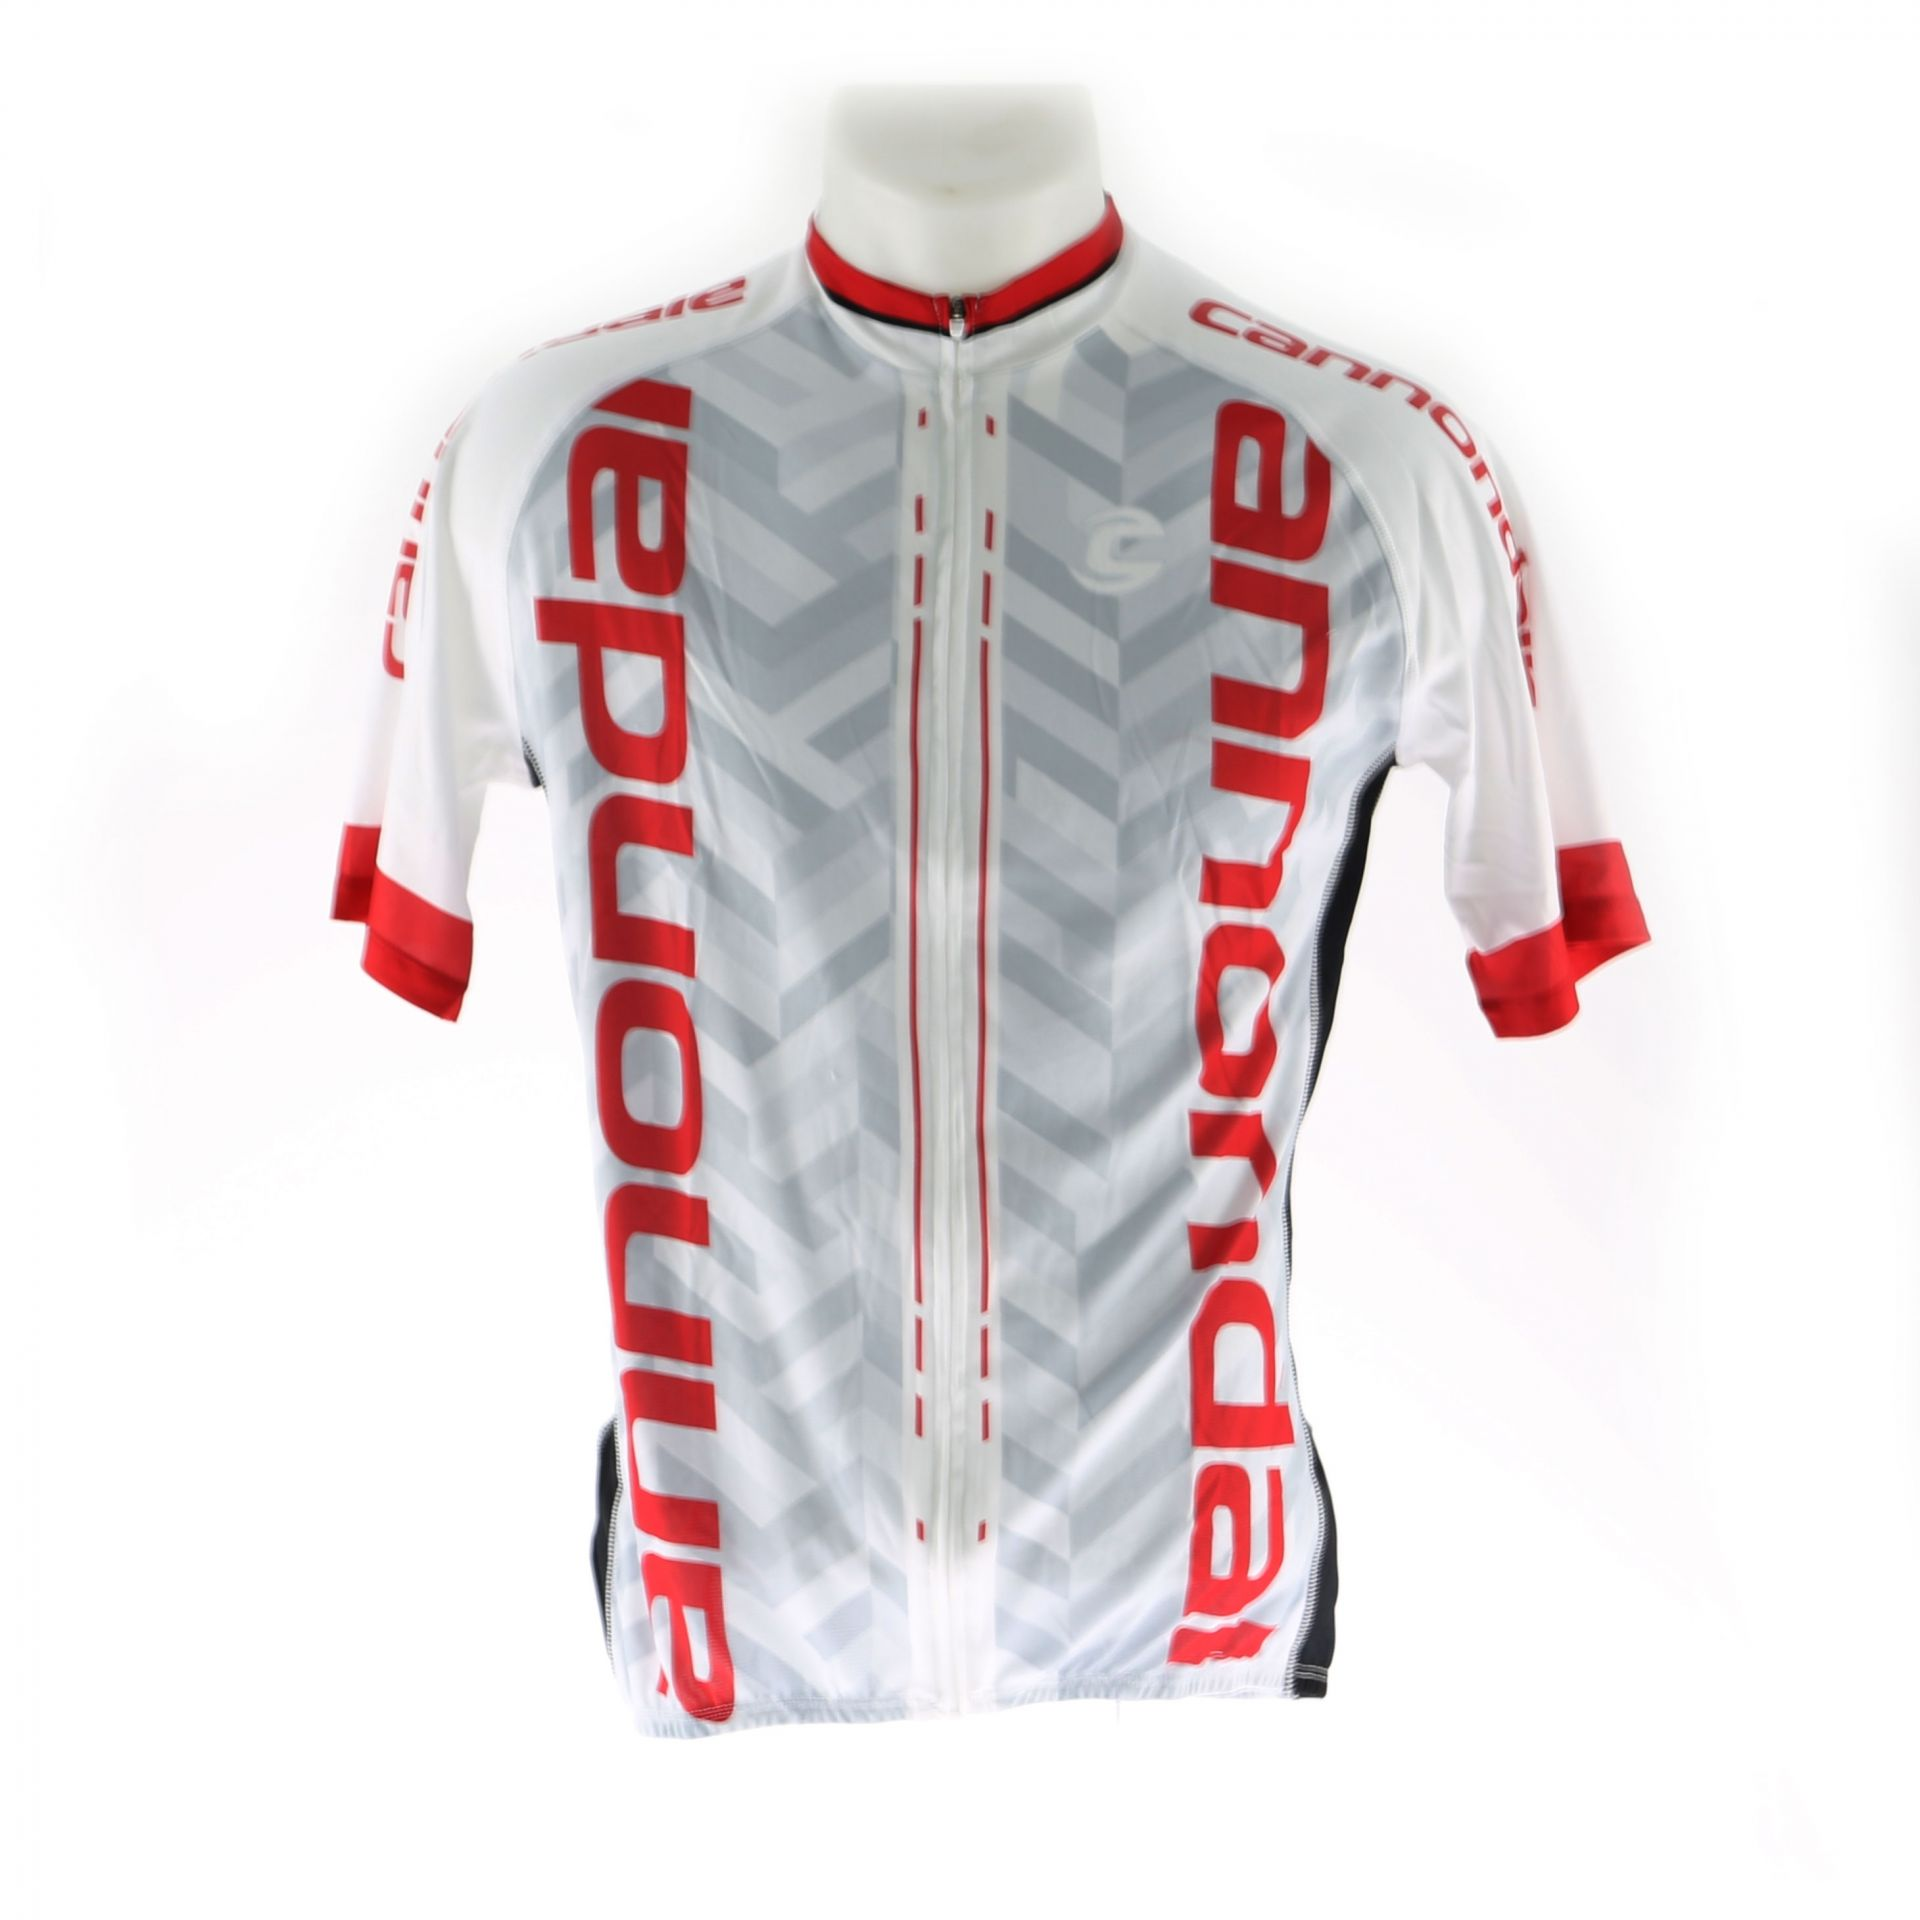 Maillot Cannondale Performance 2 Pro Jersey Blanc/Rouge Racing - M